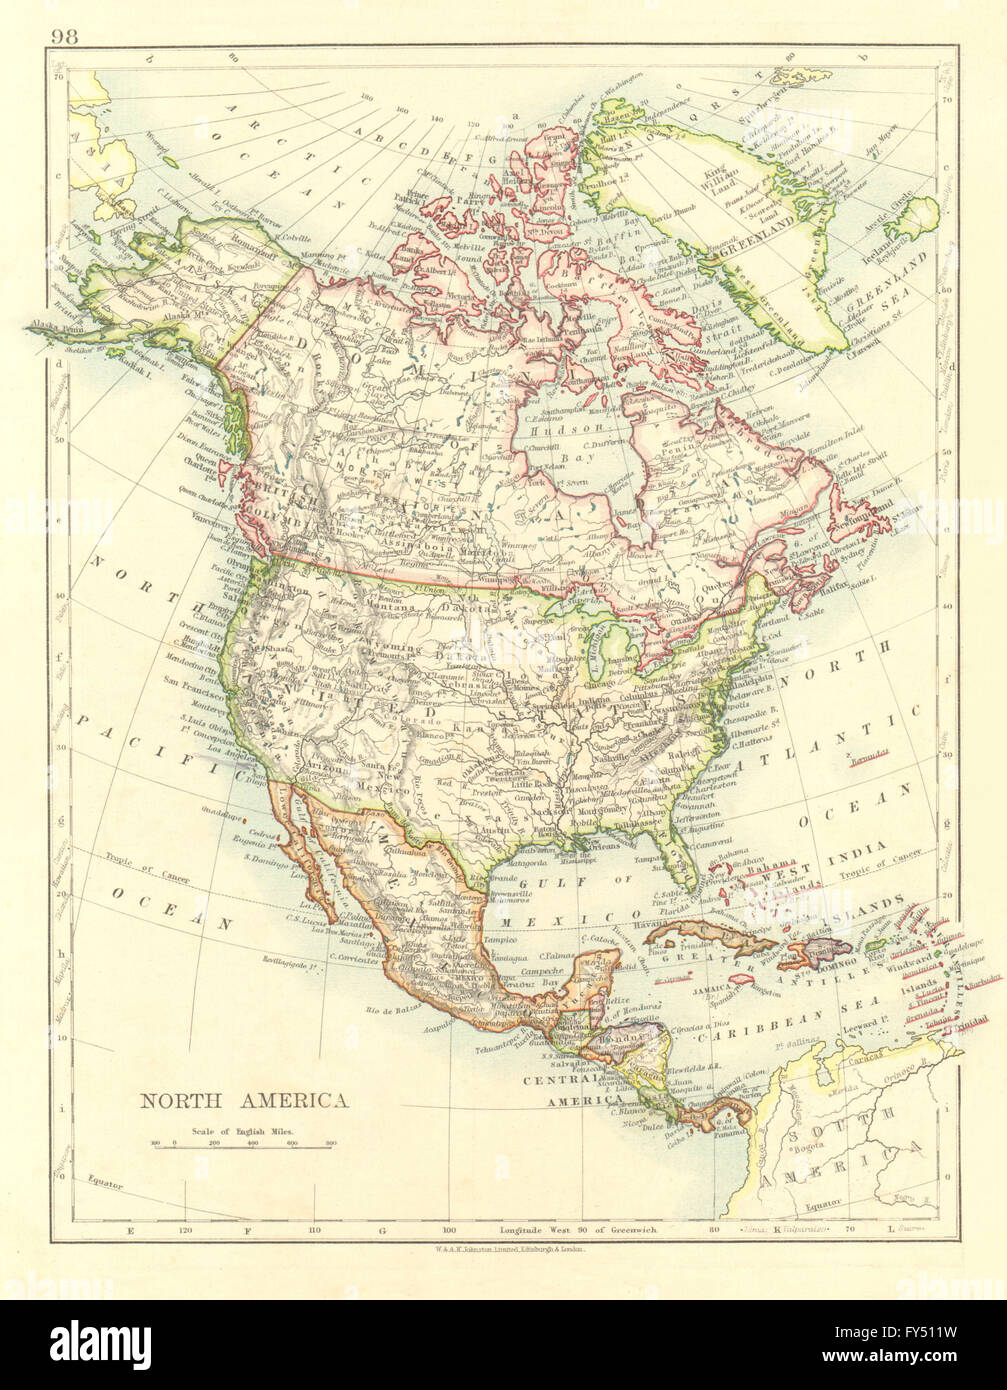 NORTH AMERICA POLITICAL Greenland USA Canada Mexico JOHNSTON - Usa canada mexico map